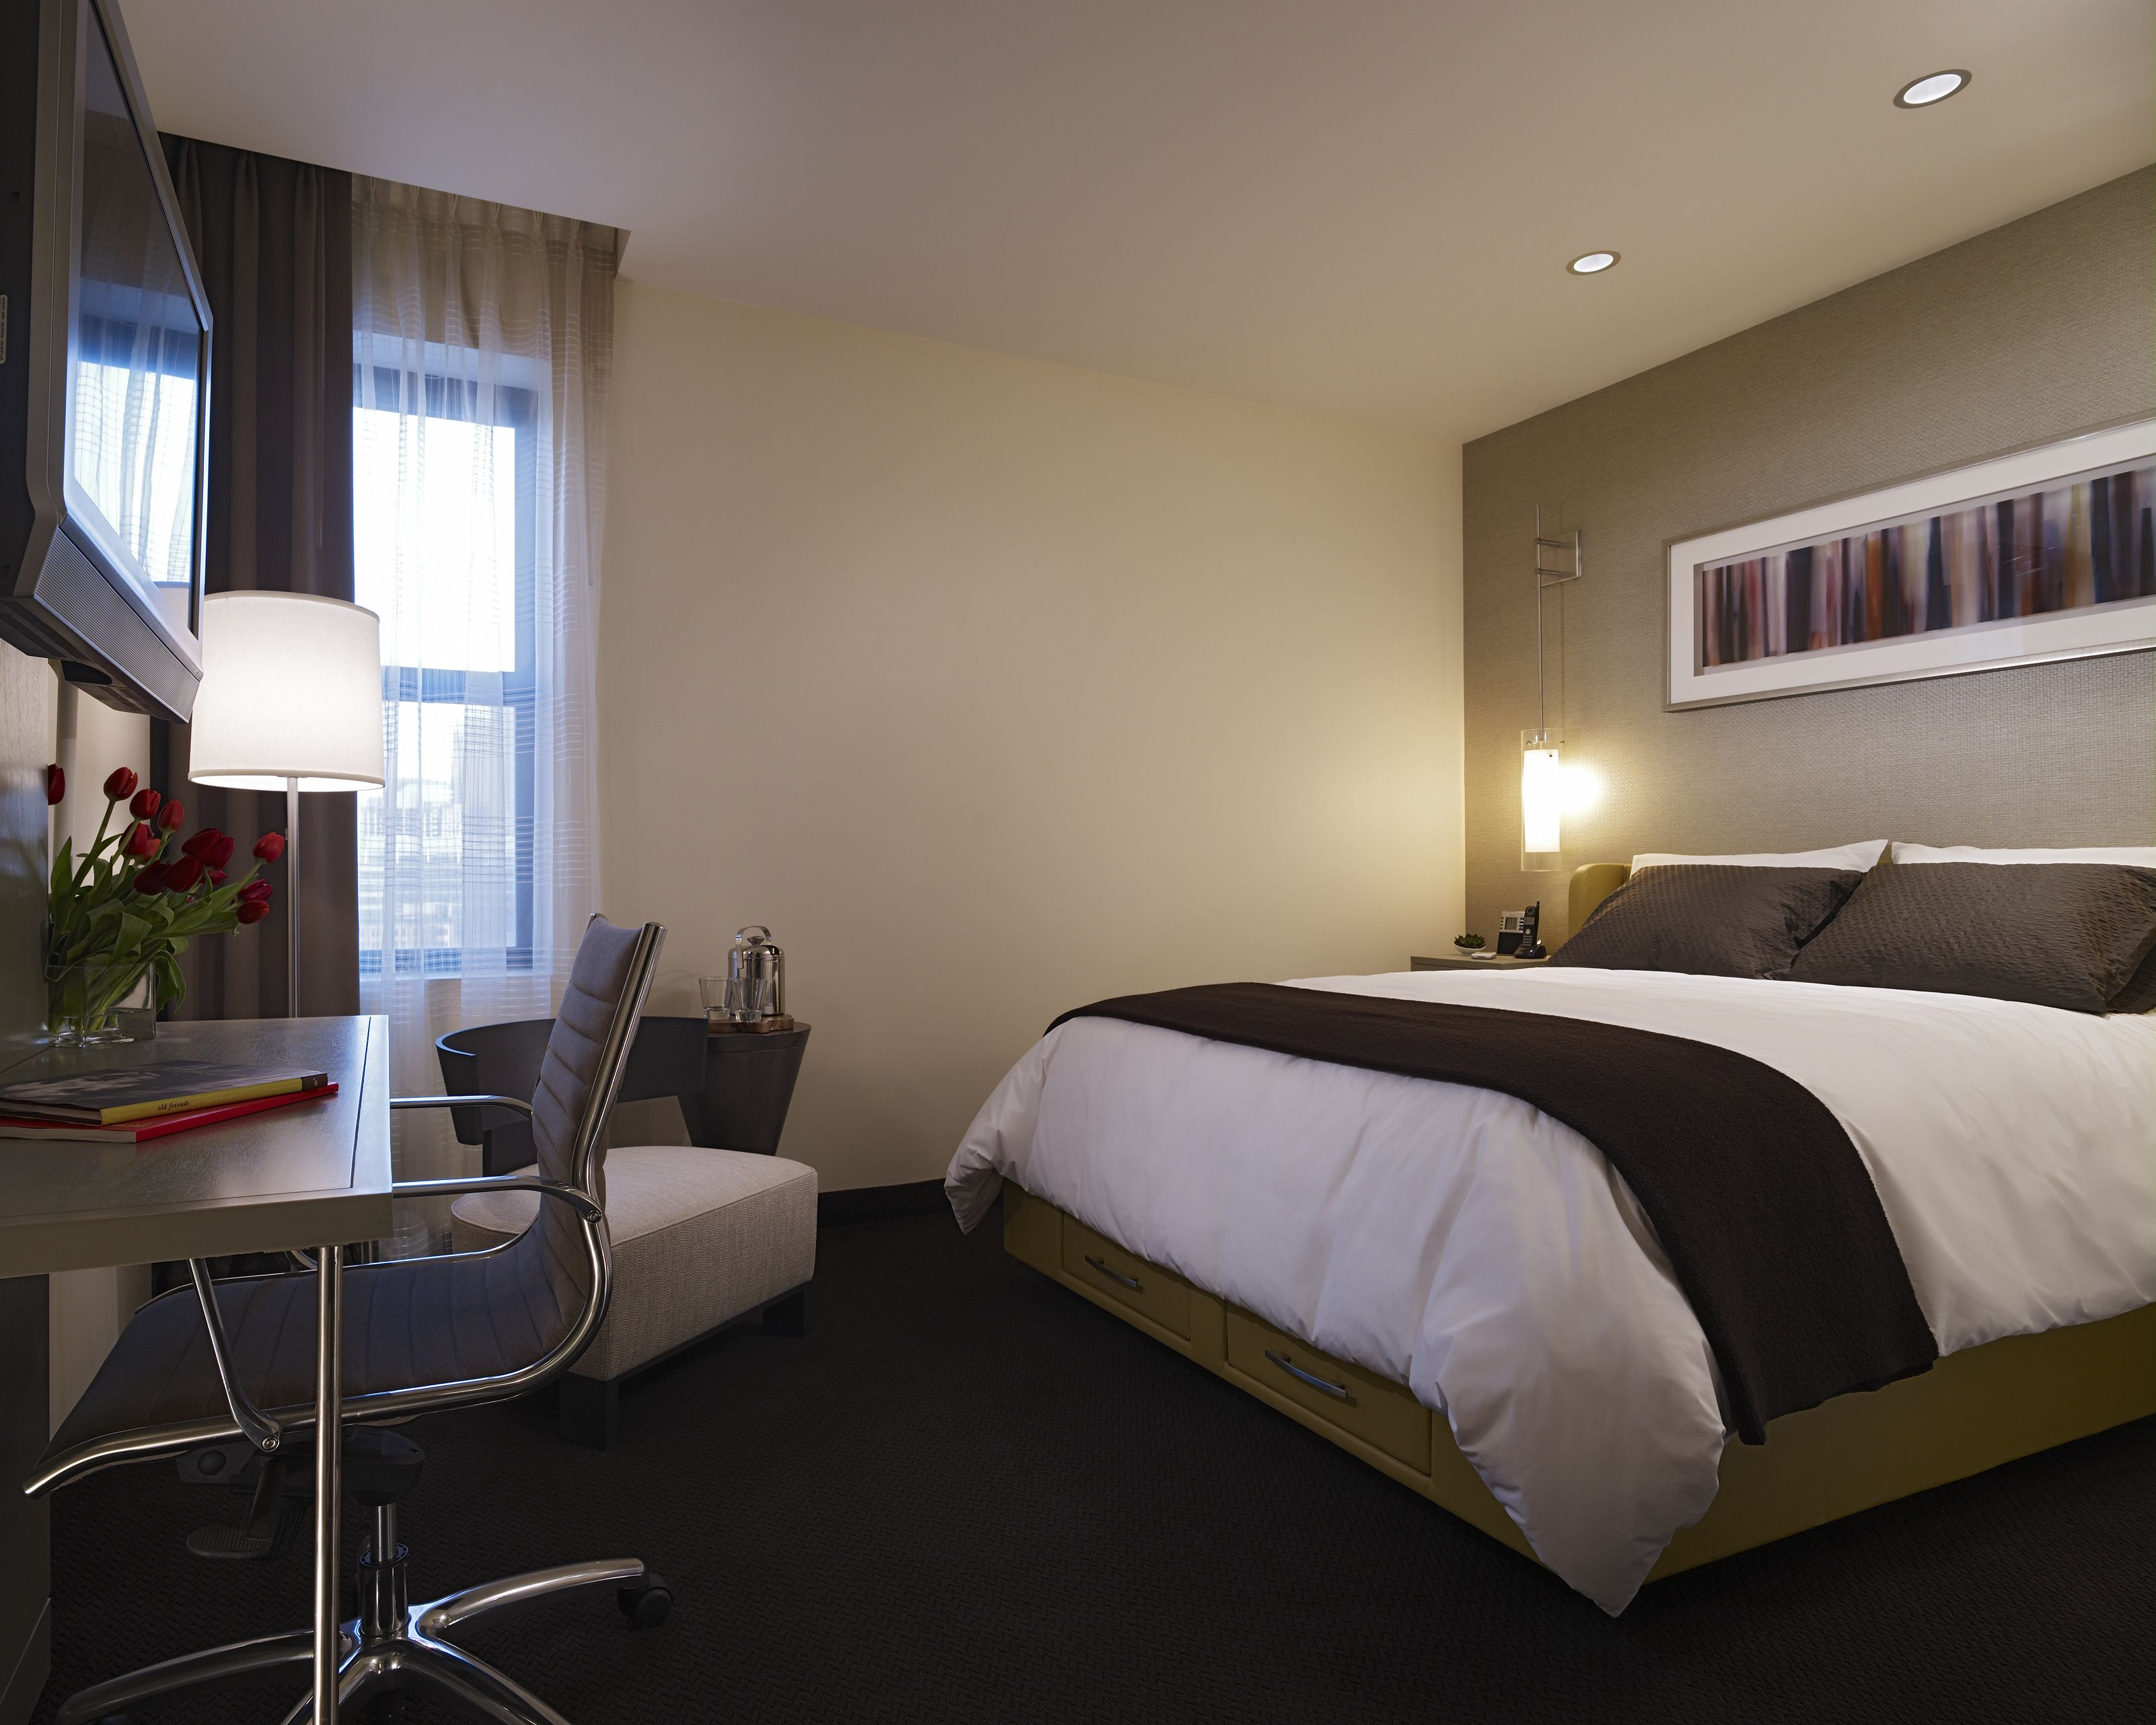 guest room in hotel felix chicago lynch communications group. Black Bedroom Furniture Sets. Home Design Ideas